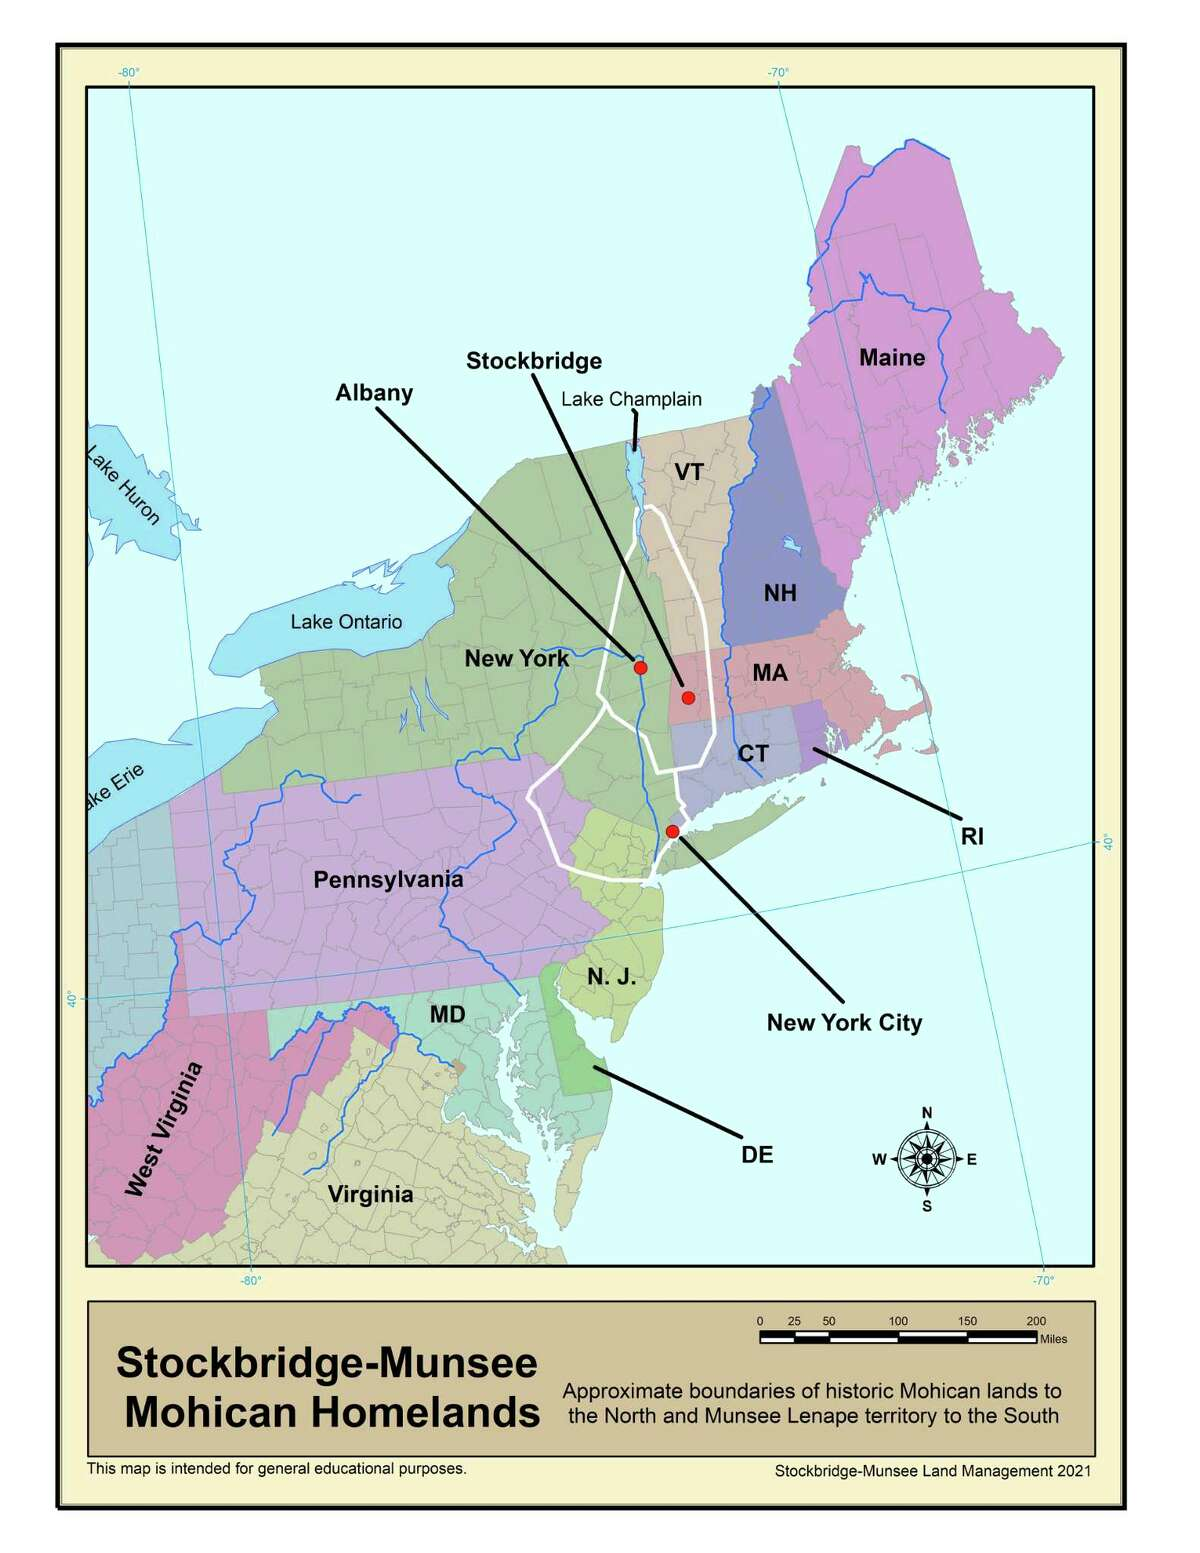 Map showing the traditional territories of the Stockbridge-Munsee band of Mohican Indians and associated Native American nations